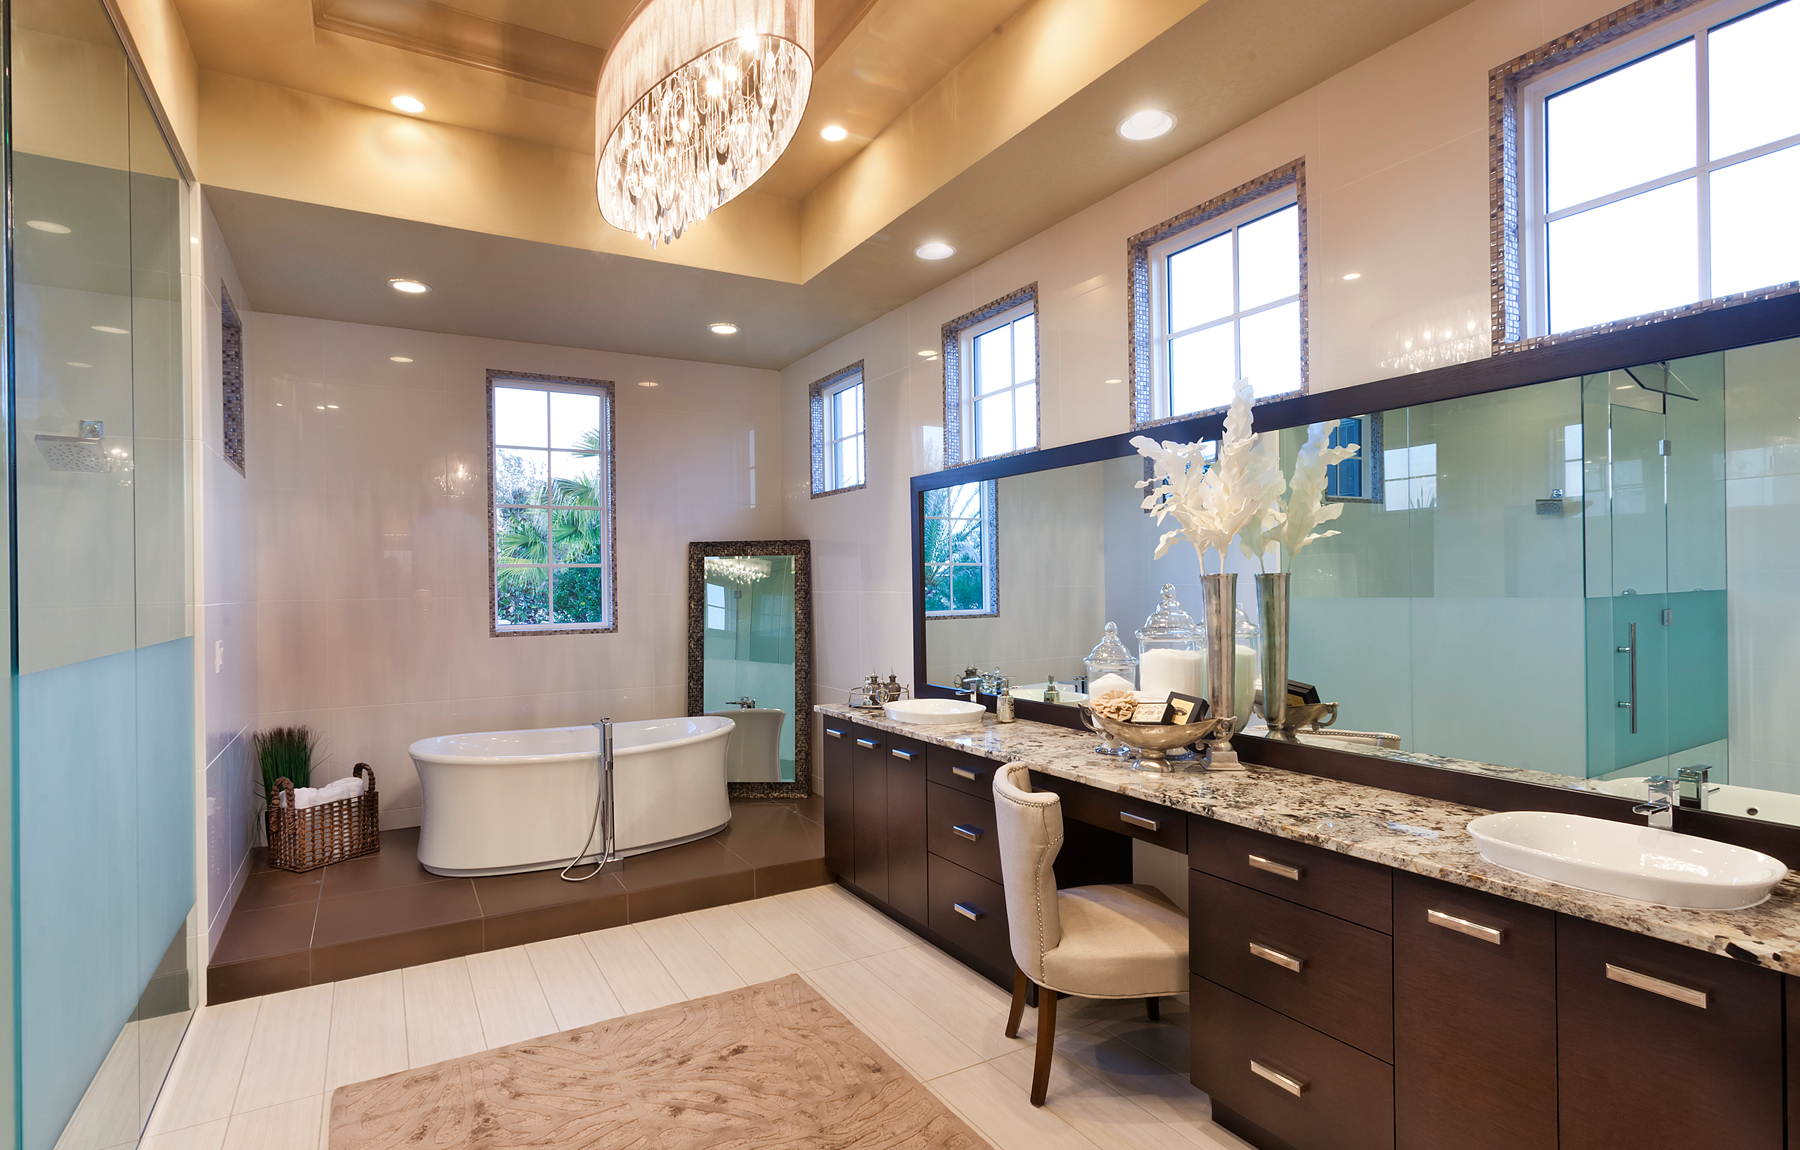 The Akarra III John Cannon Homes master bath